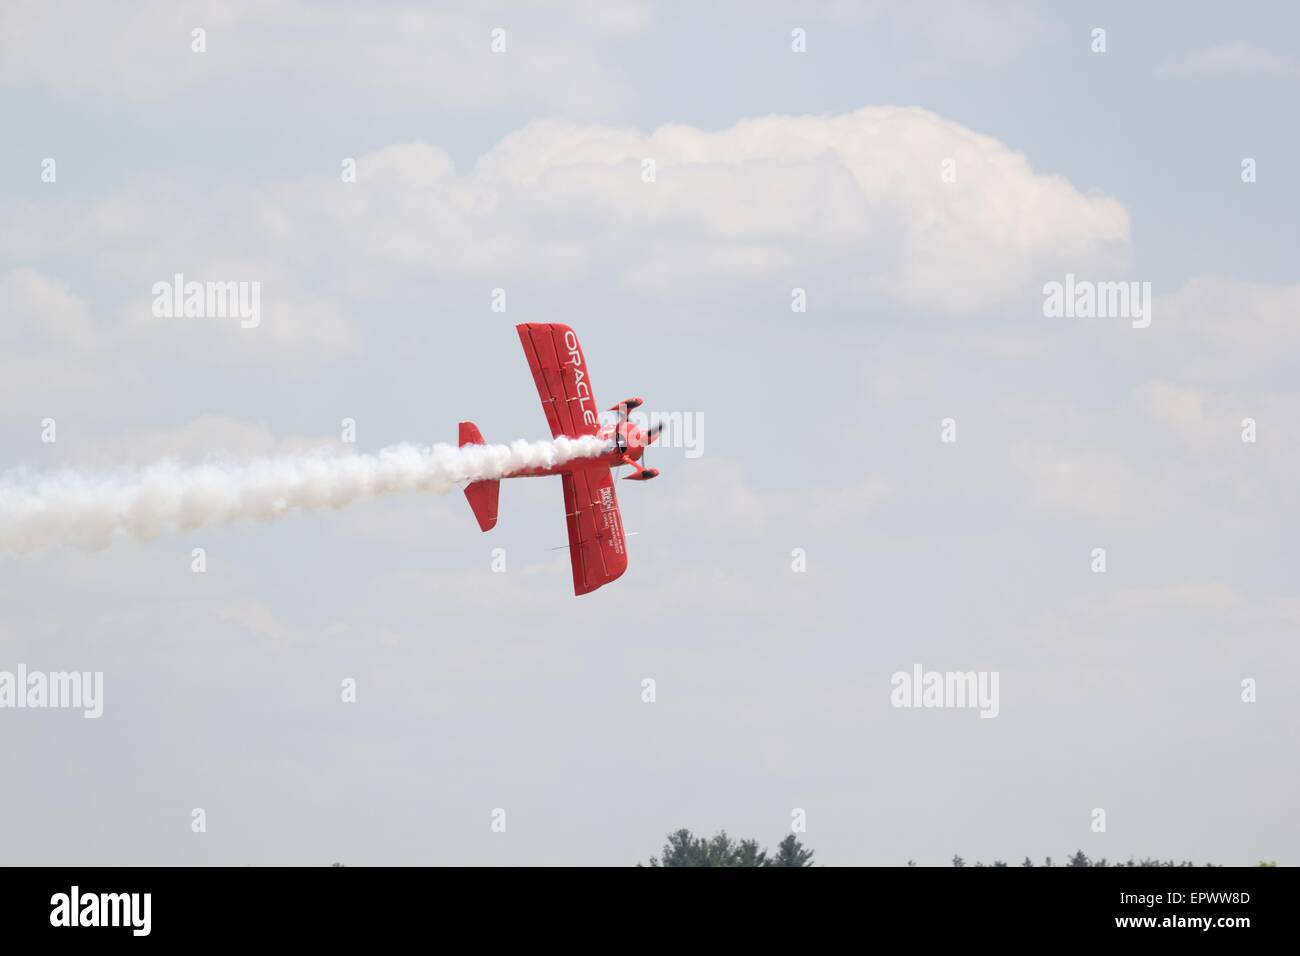 Oracle Aerobatic Airplane Flown By Sean D Tucker at Great New England Air Show, Westover Air Reserve Base, Massachusets, Stock Photo